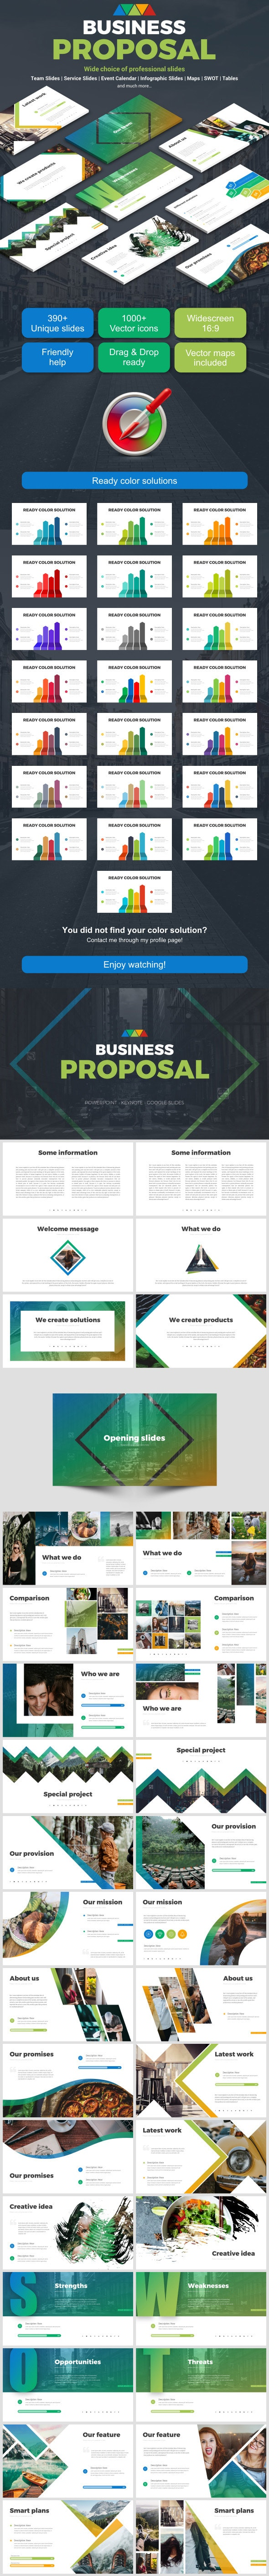 Business Proposal - Business PowerPoint Templates